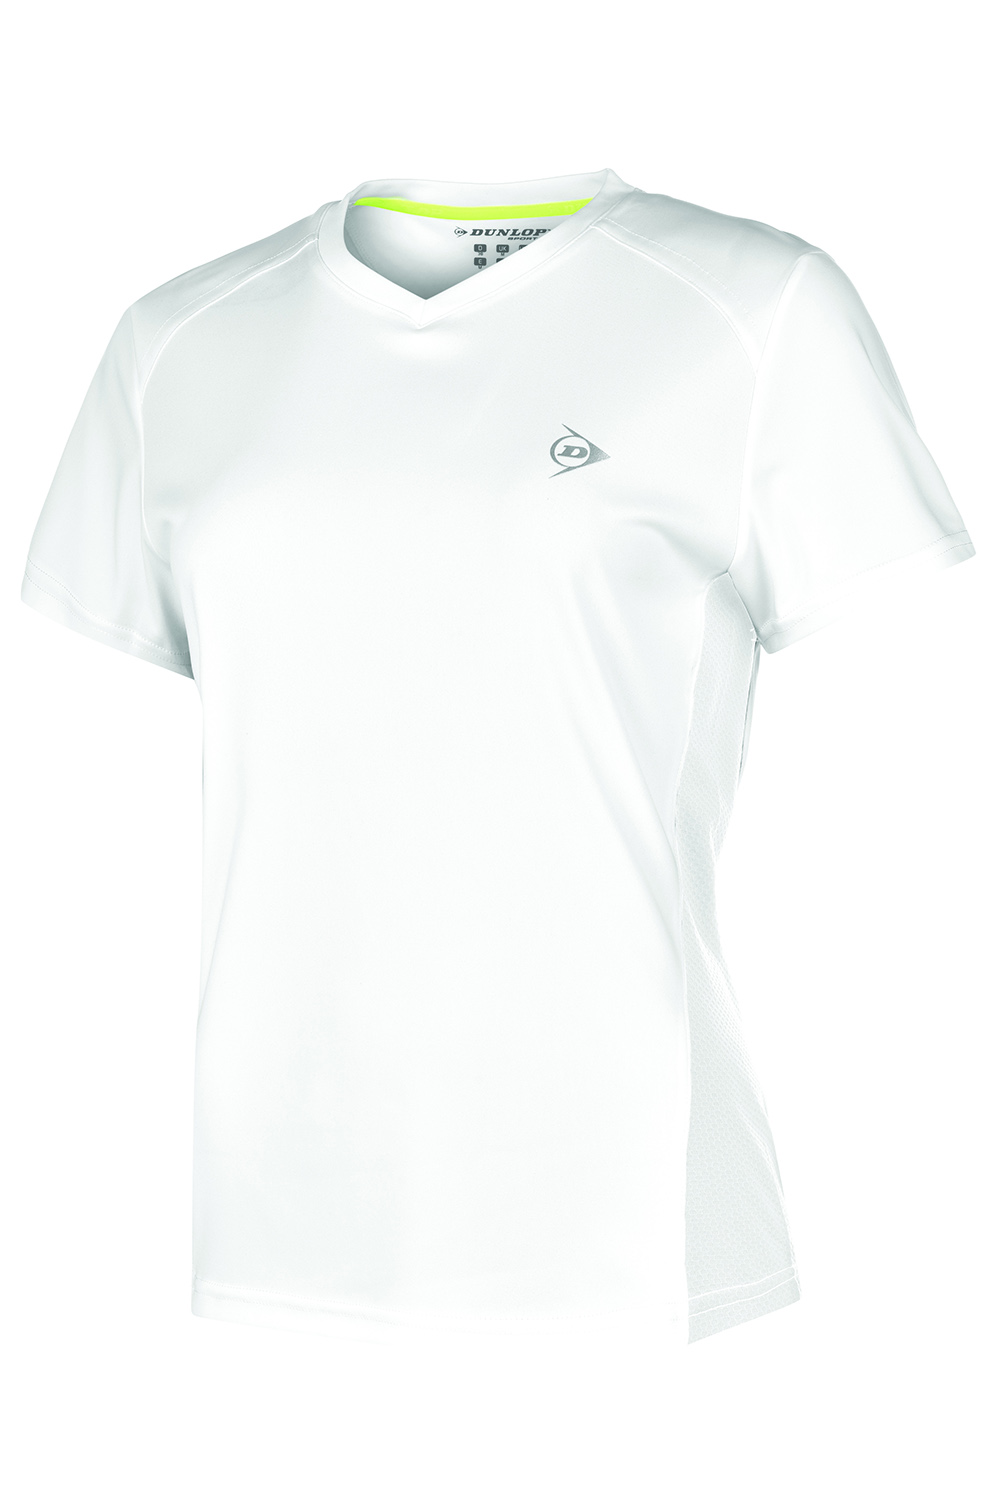 Image of   Dunlop AC Club Crew T-shirt Dames - Wit / antraciet - M